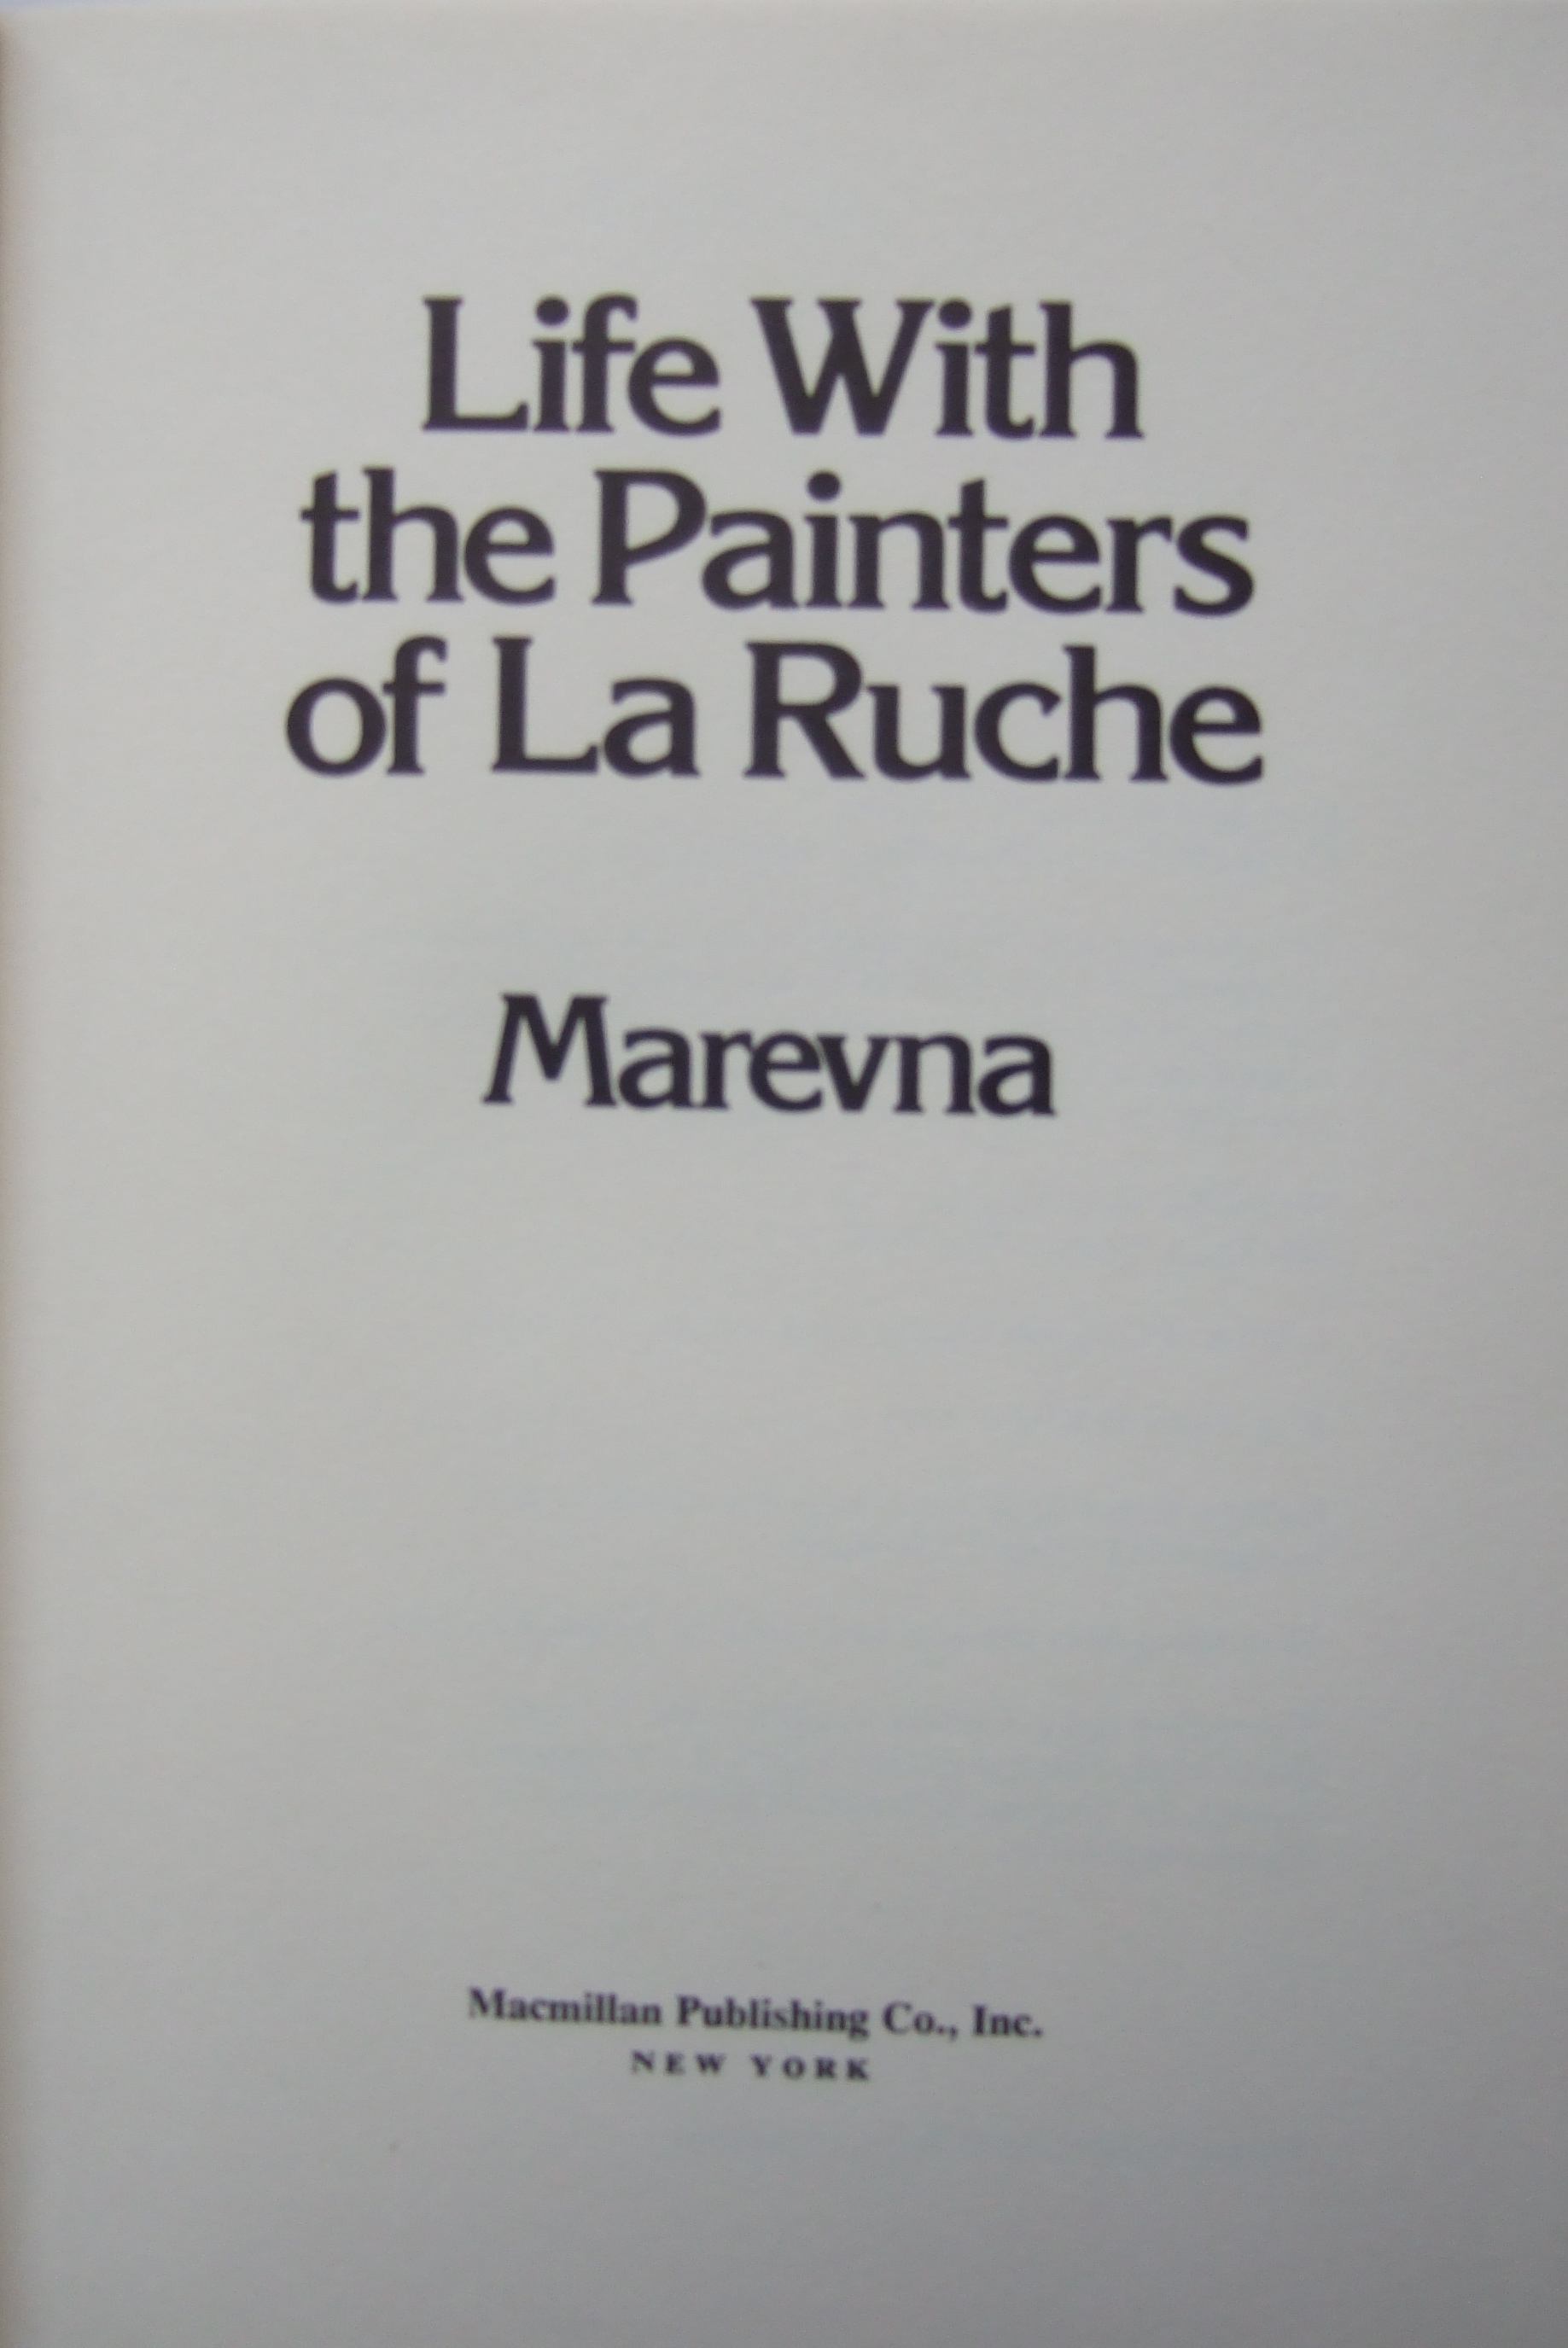 """""""Life with the painters of La Ruche"""" book by Marevna."""